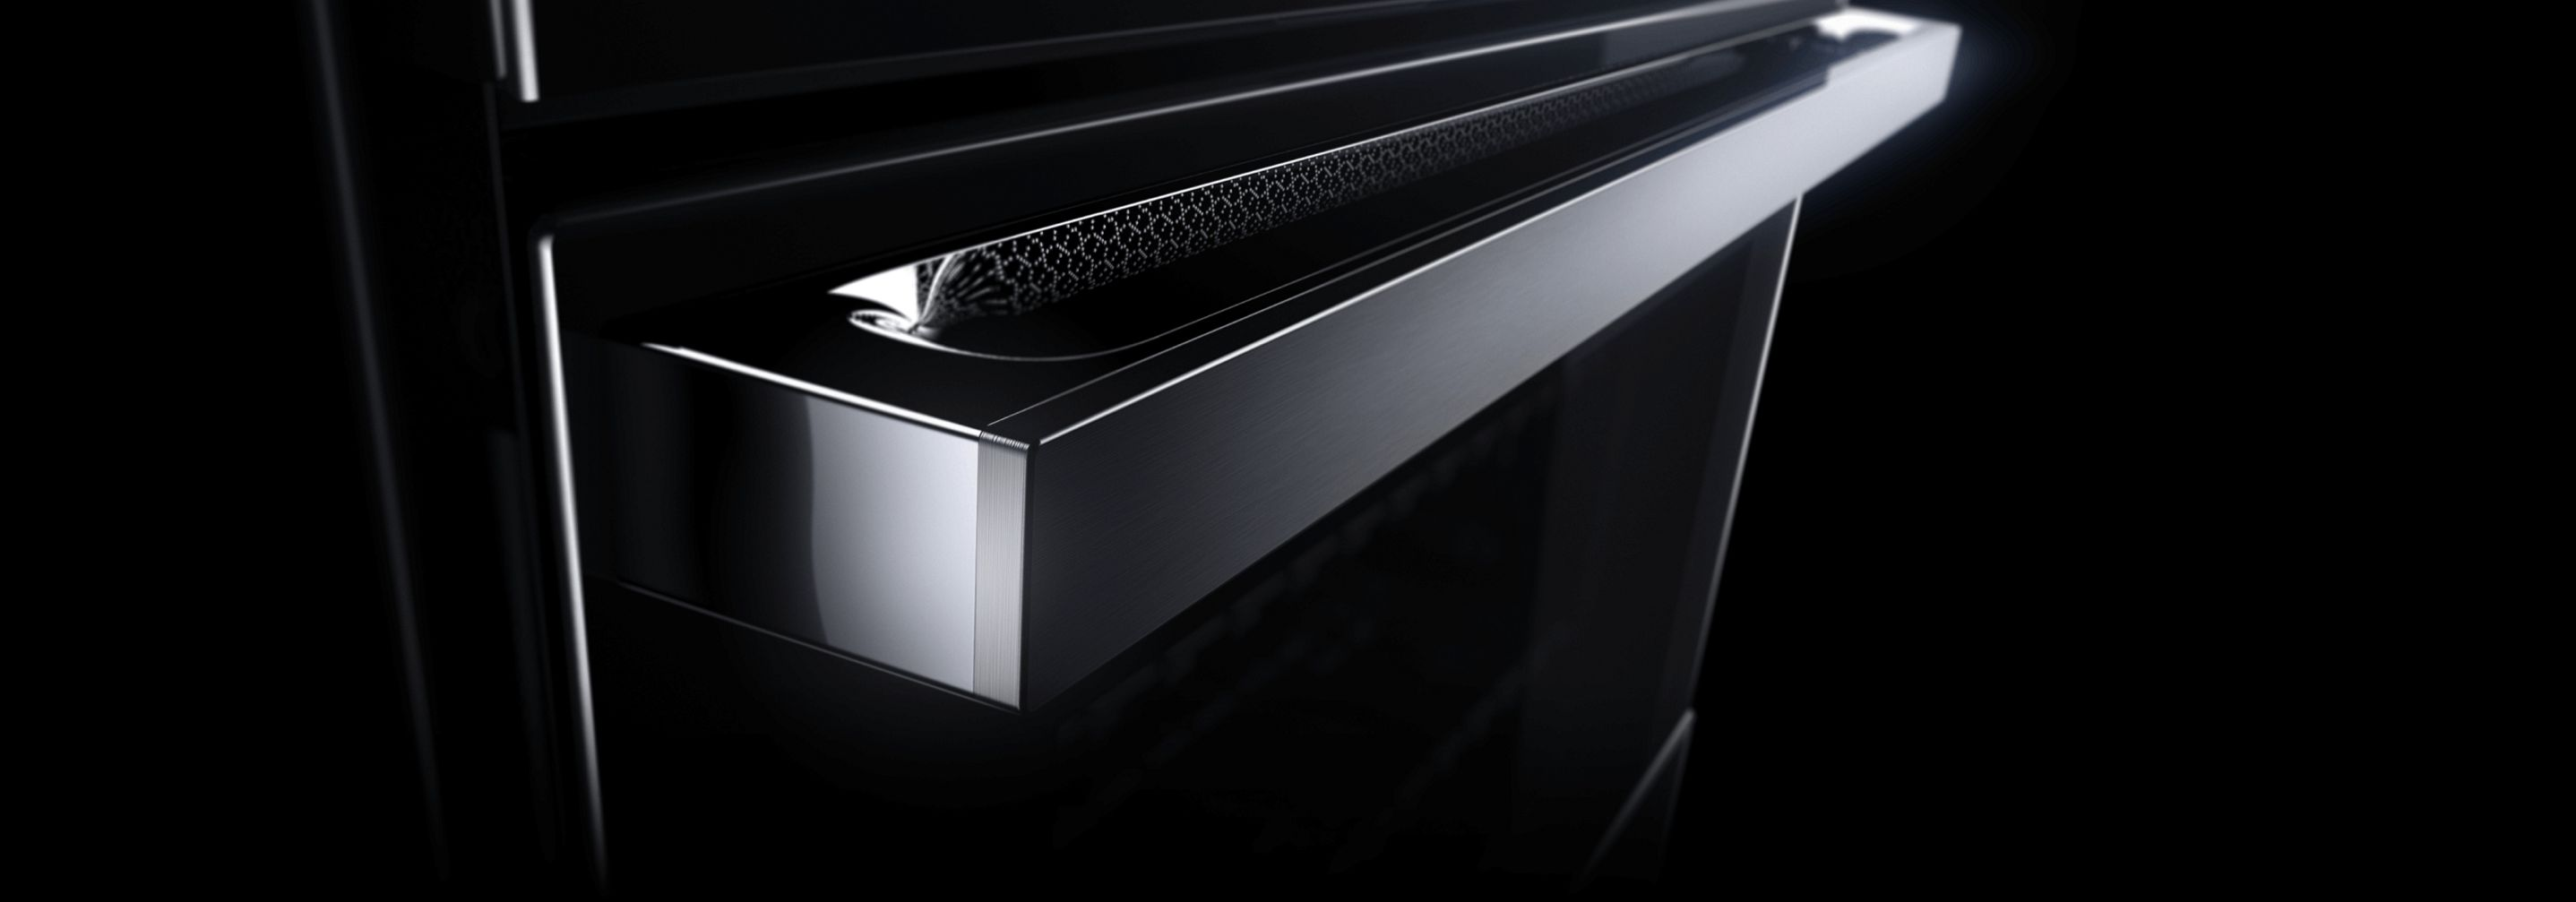 The LCD screen and handle of a JennAir® NOIR™ Design Wall Oven.